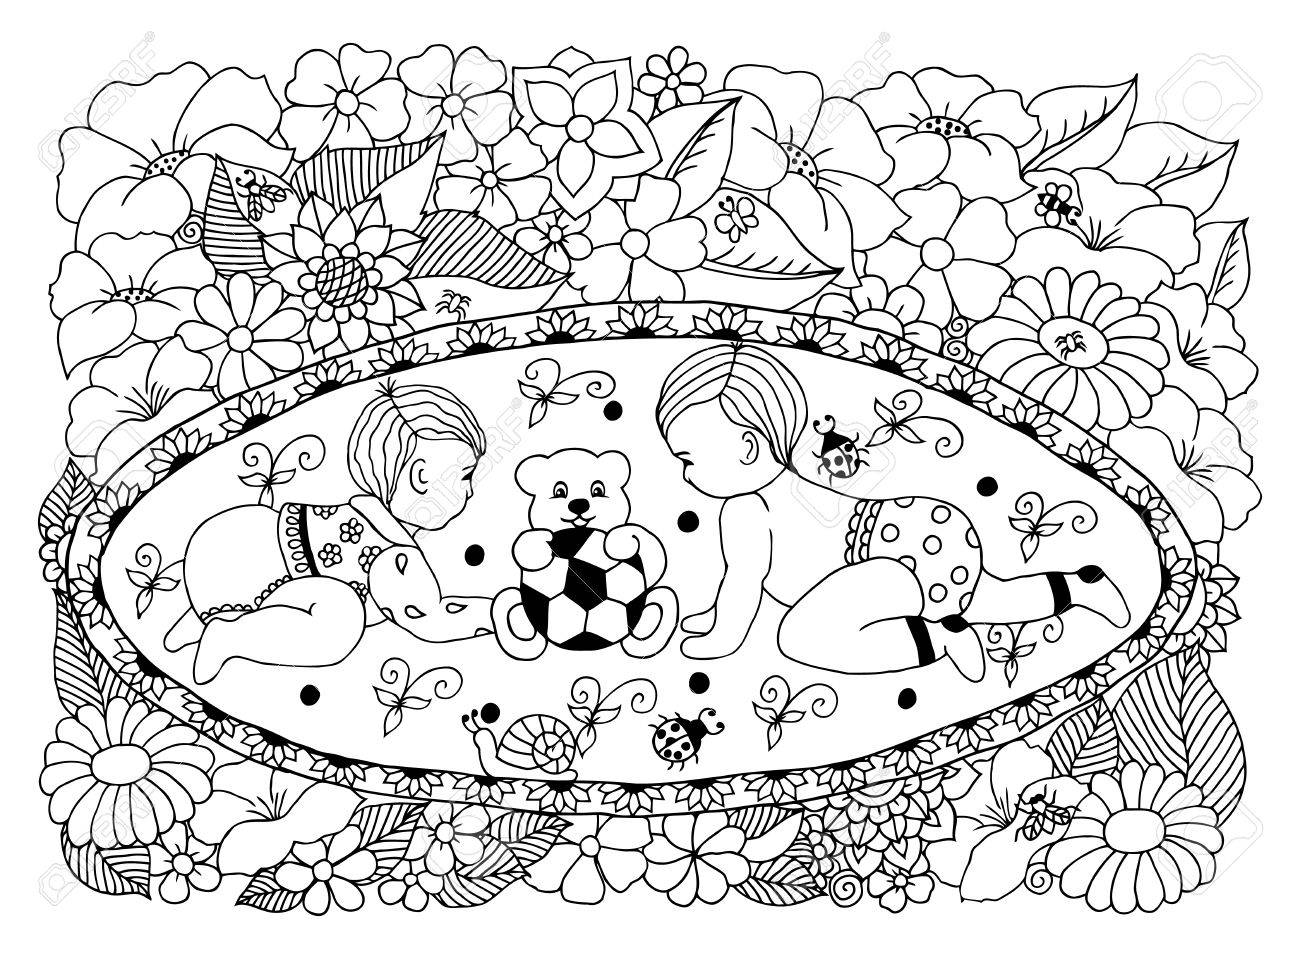 Illustration Children Playing On A Carpet Among The Flowers ...